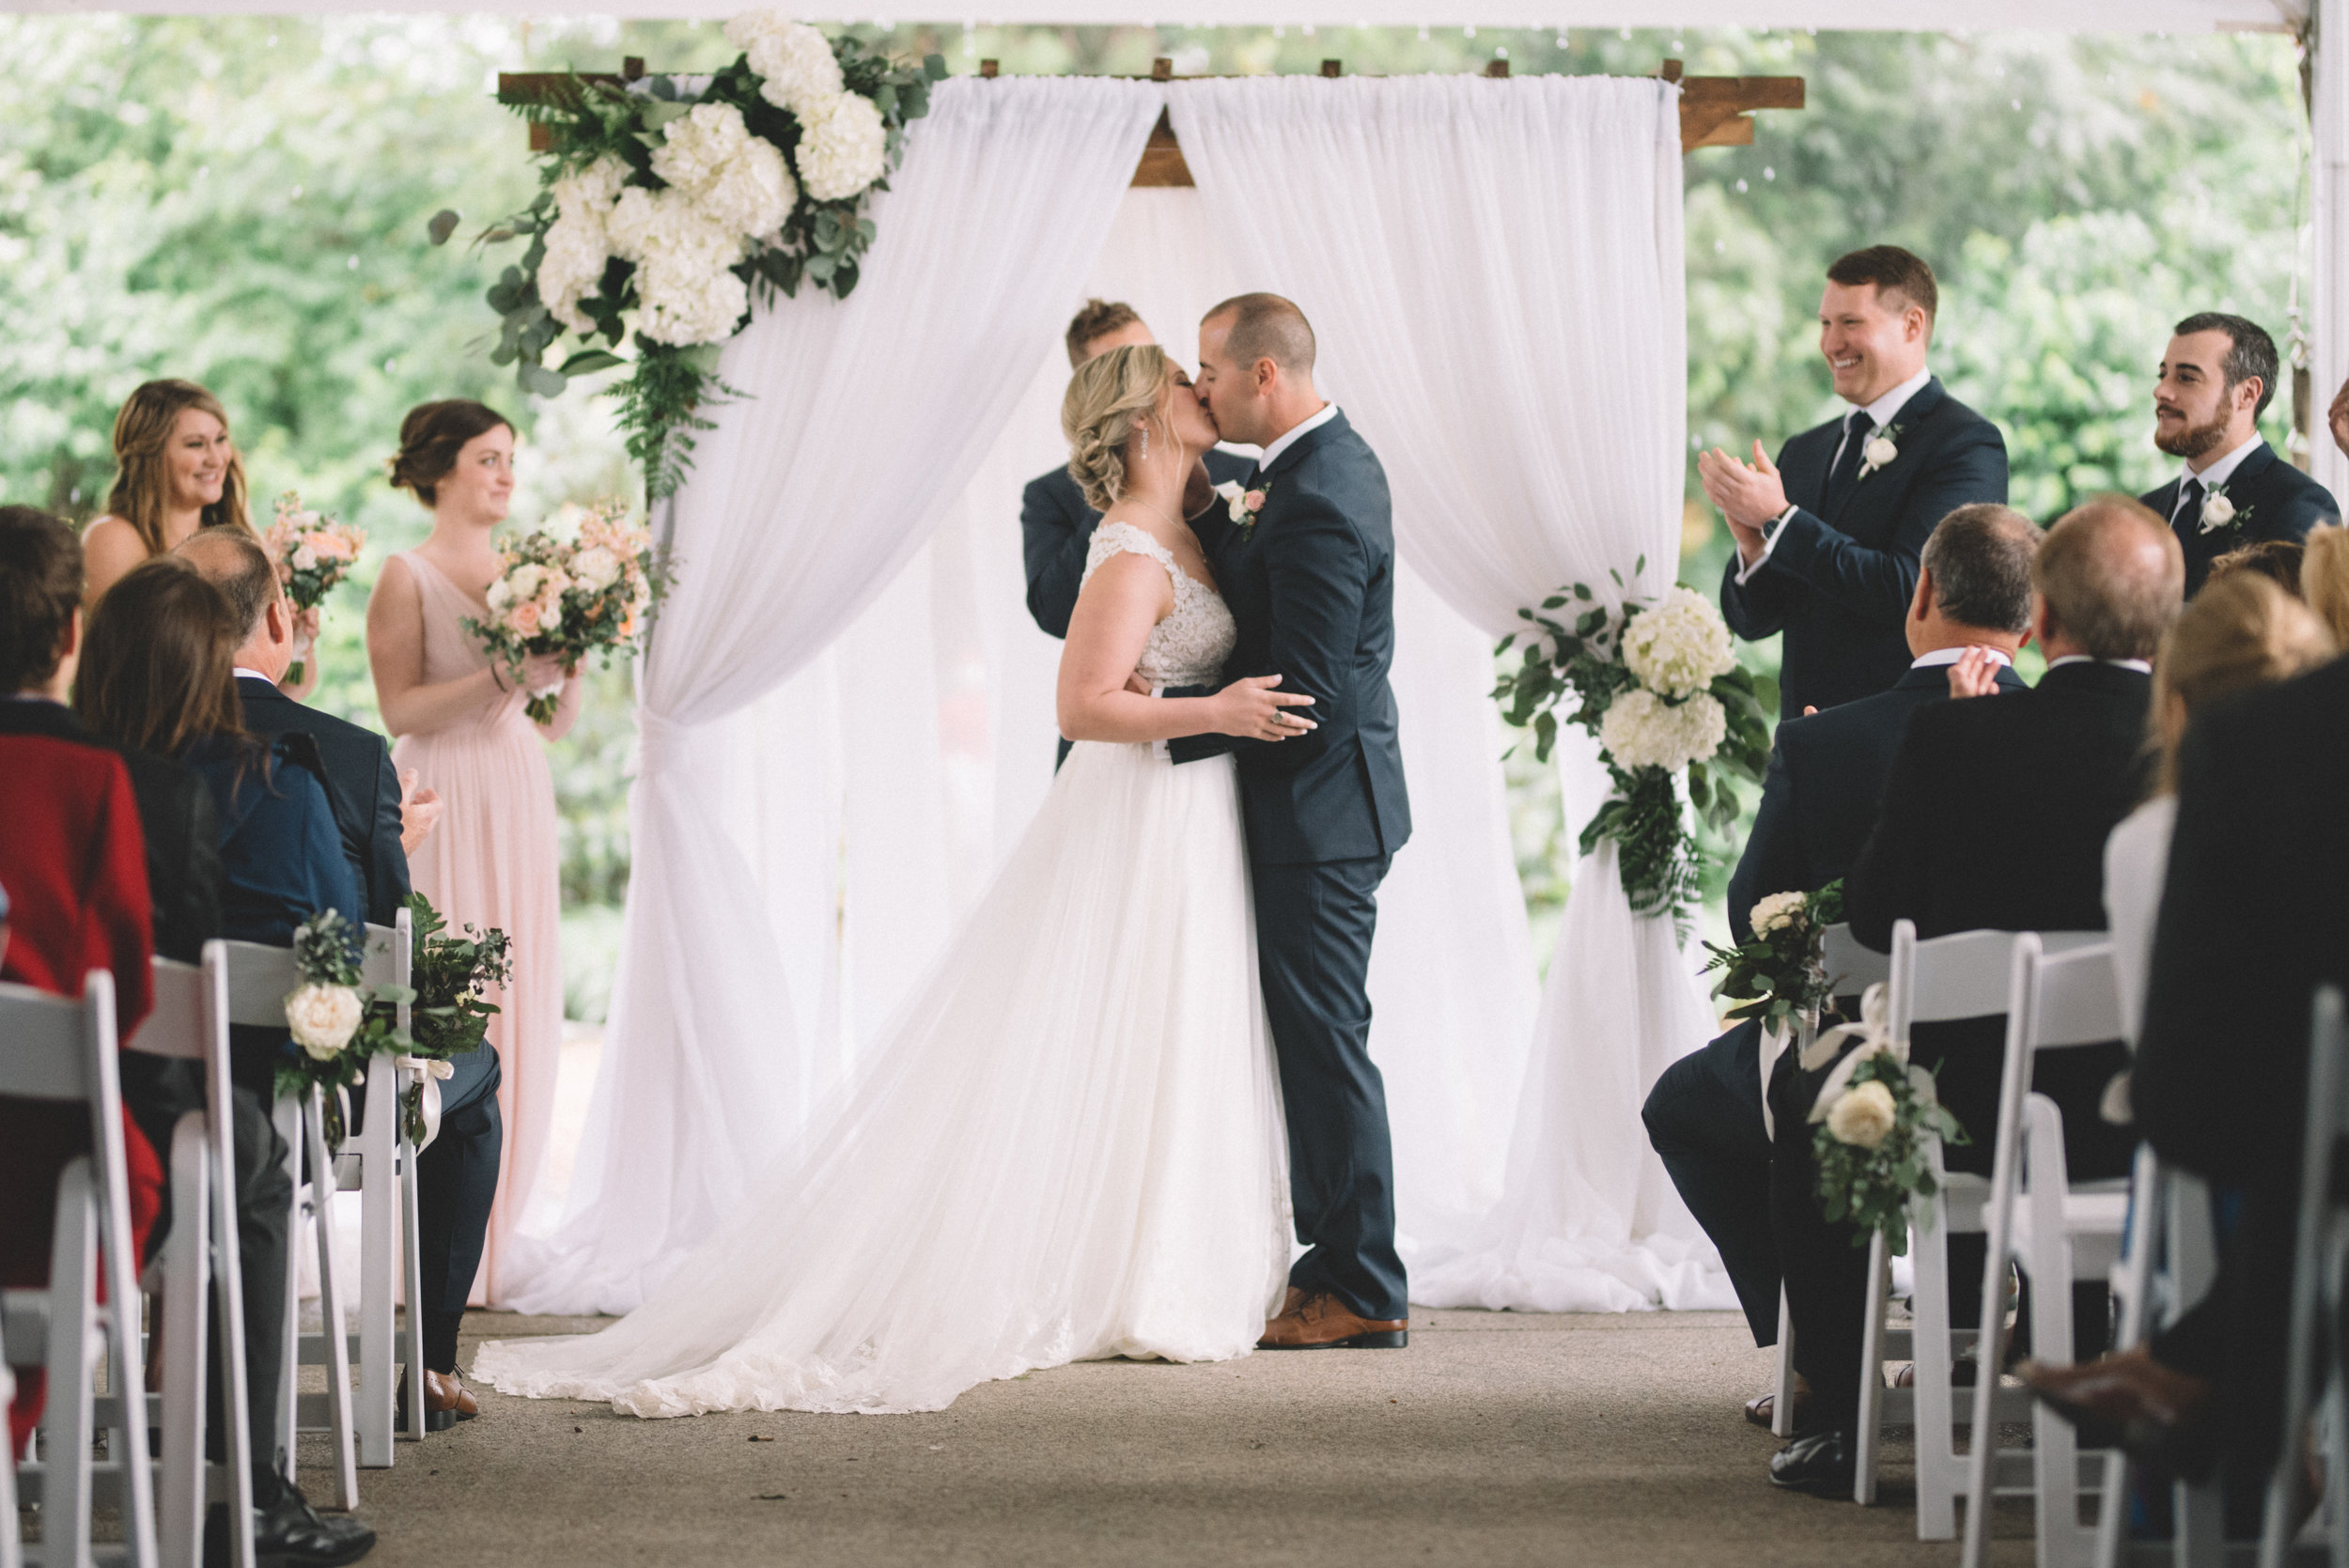 Belle Meade Plantation - April Wedding - Nashville, TN